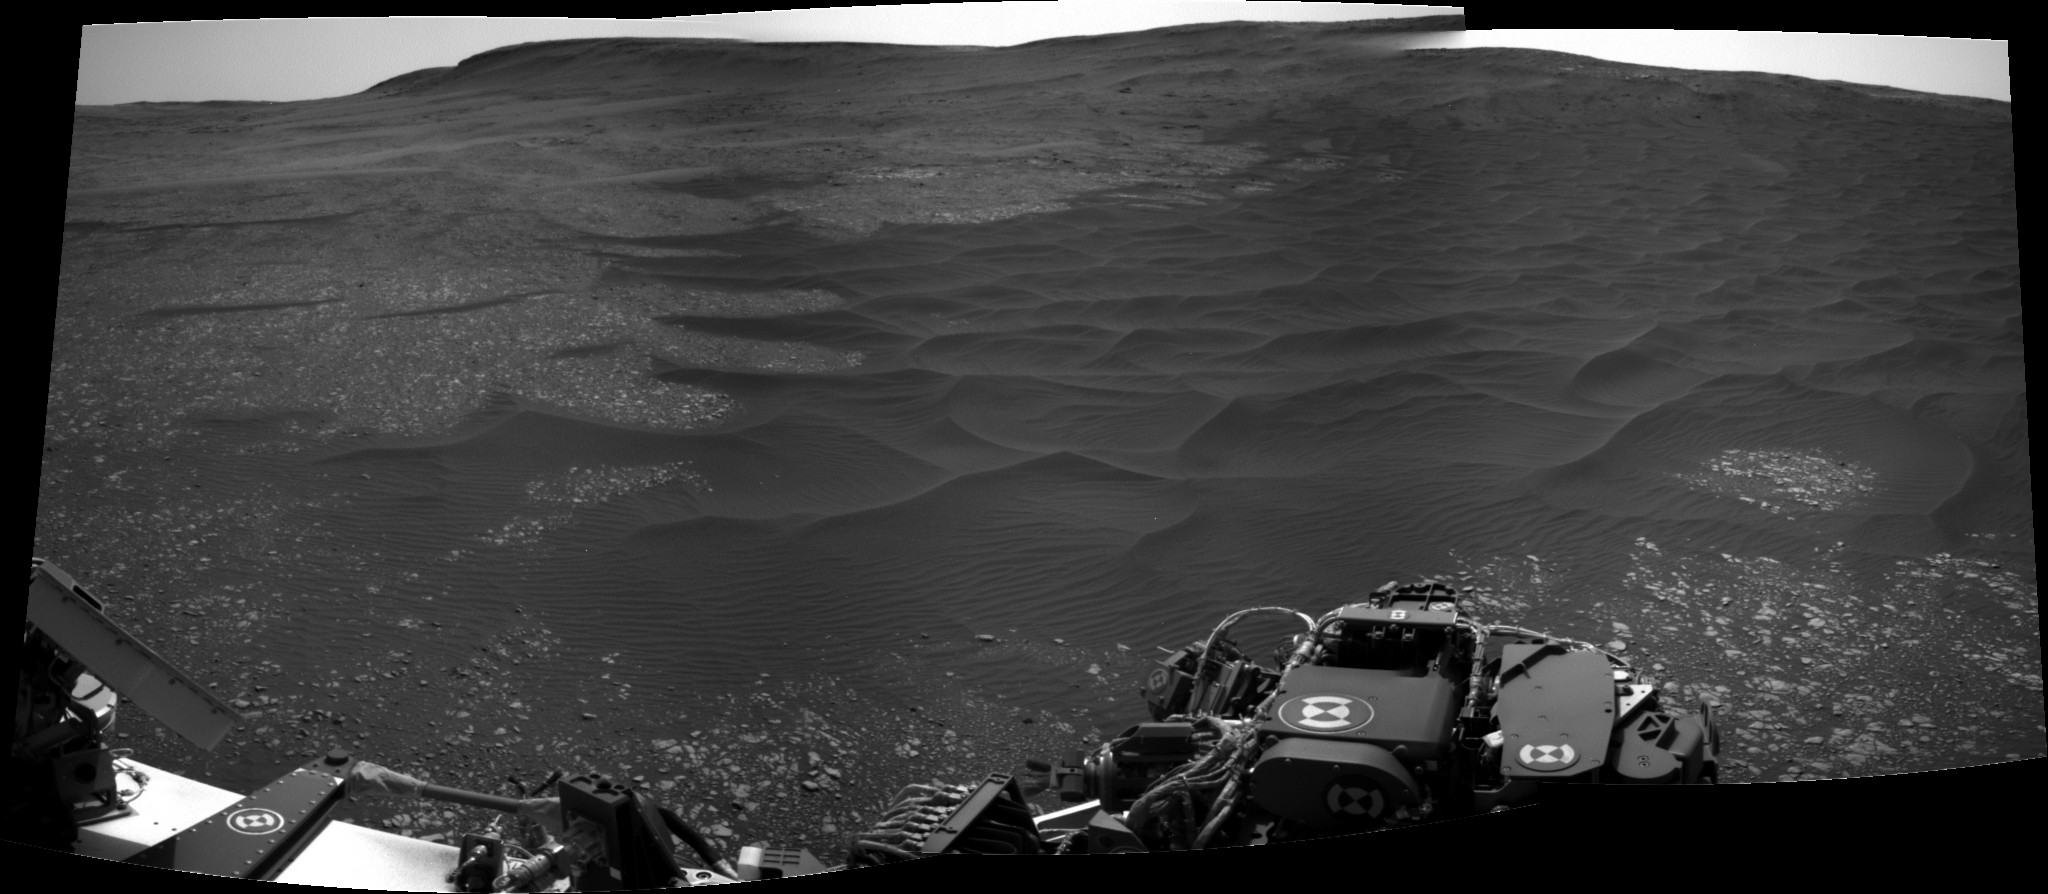 [Curiosity/MSL] L'exploration du cratère Gale (3/3) - Page 2 Pano10